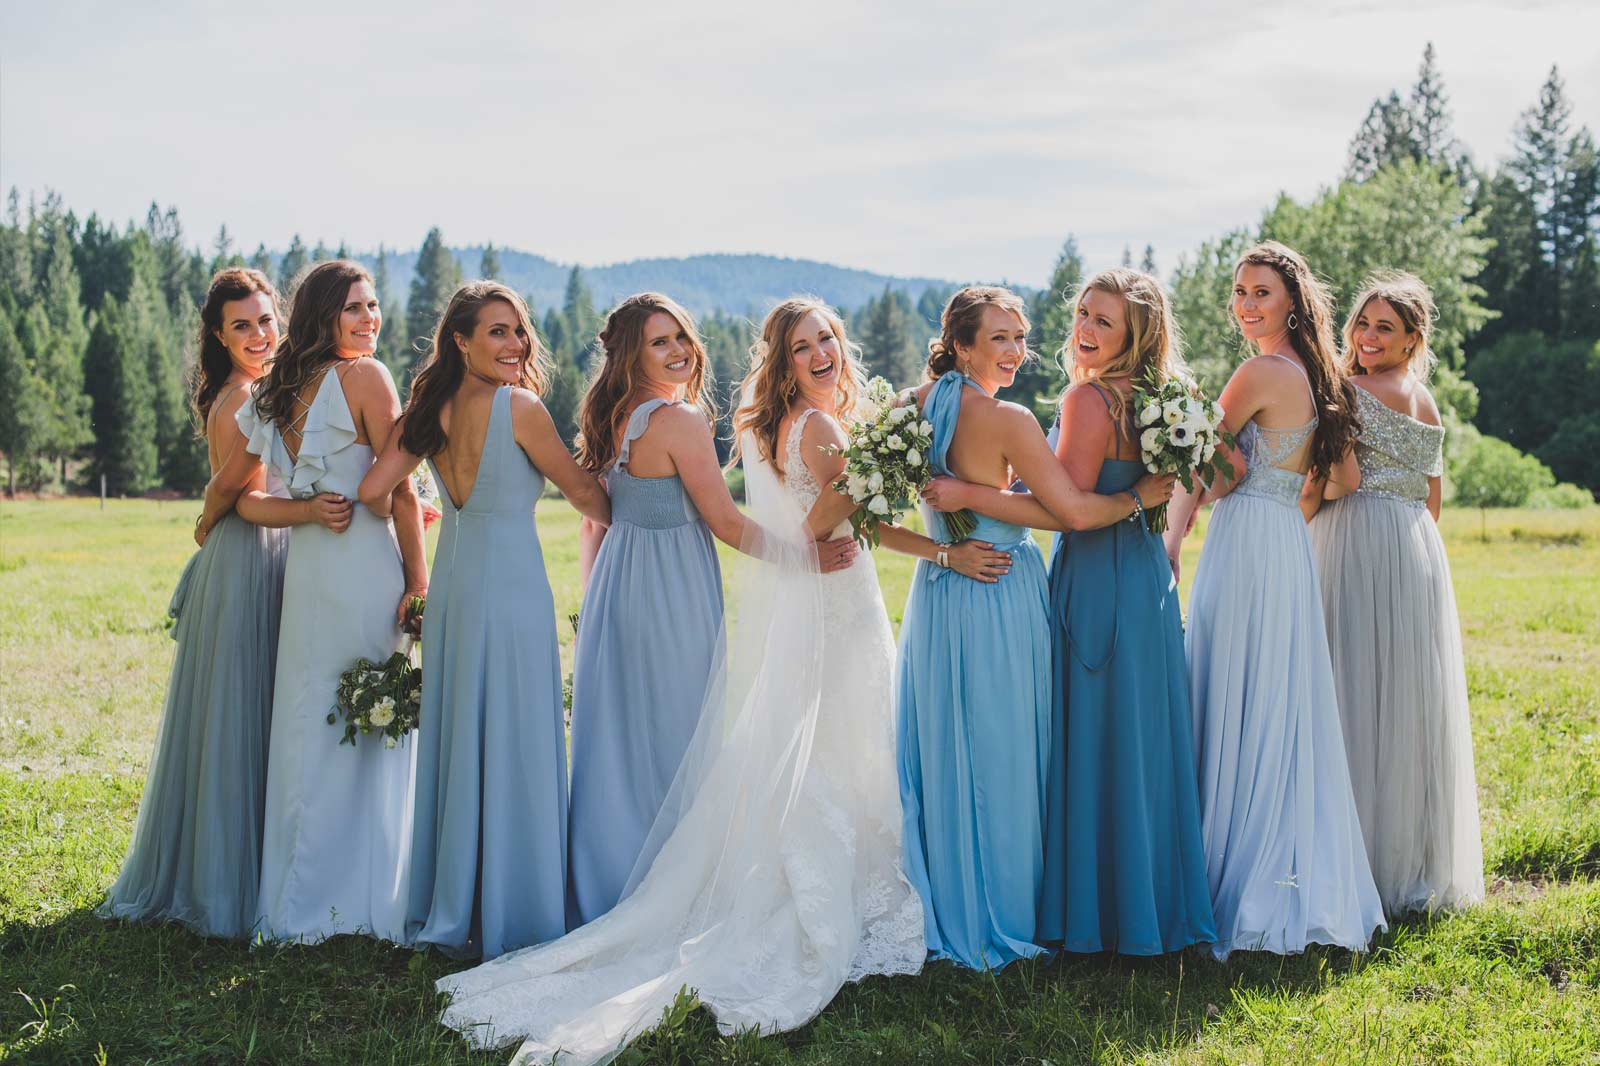 A bride and her bridesmaids arm in arm posing for a photo before her ranch wedding